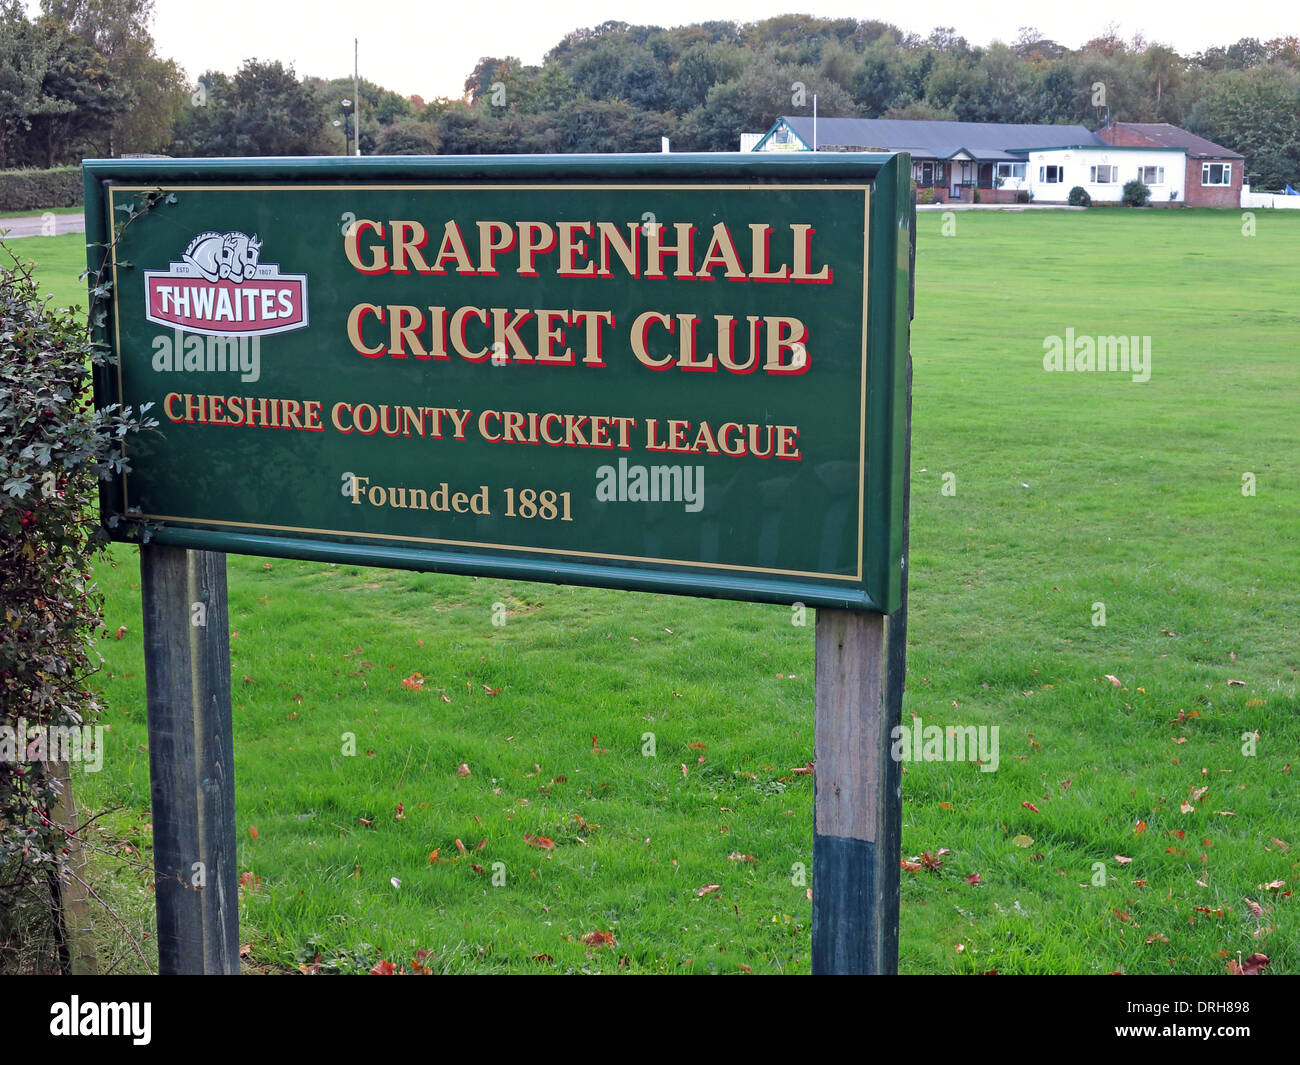 Sign outside Grappenhall Cricket Club, founded 1881, Cheshire, england, UK - Stock Image